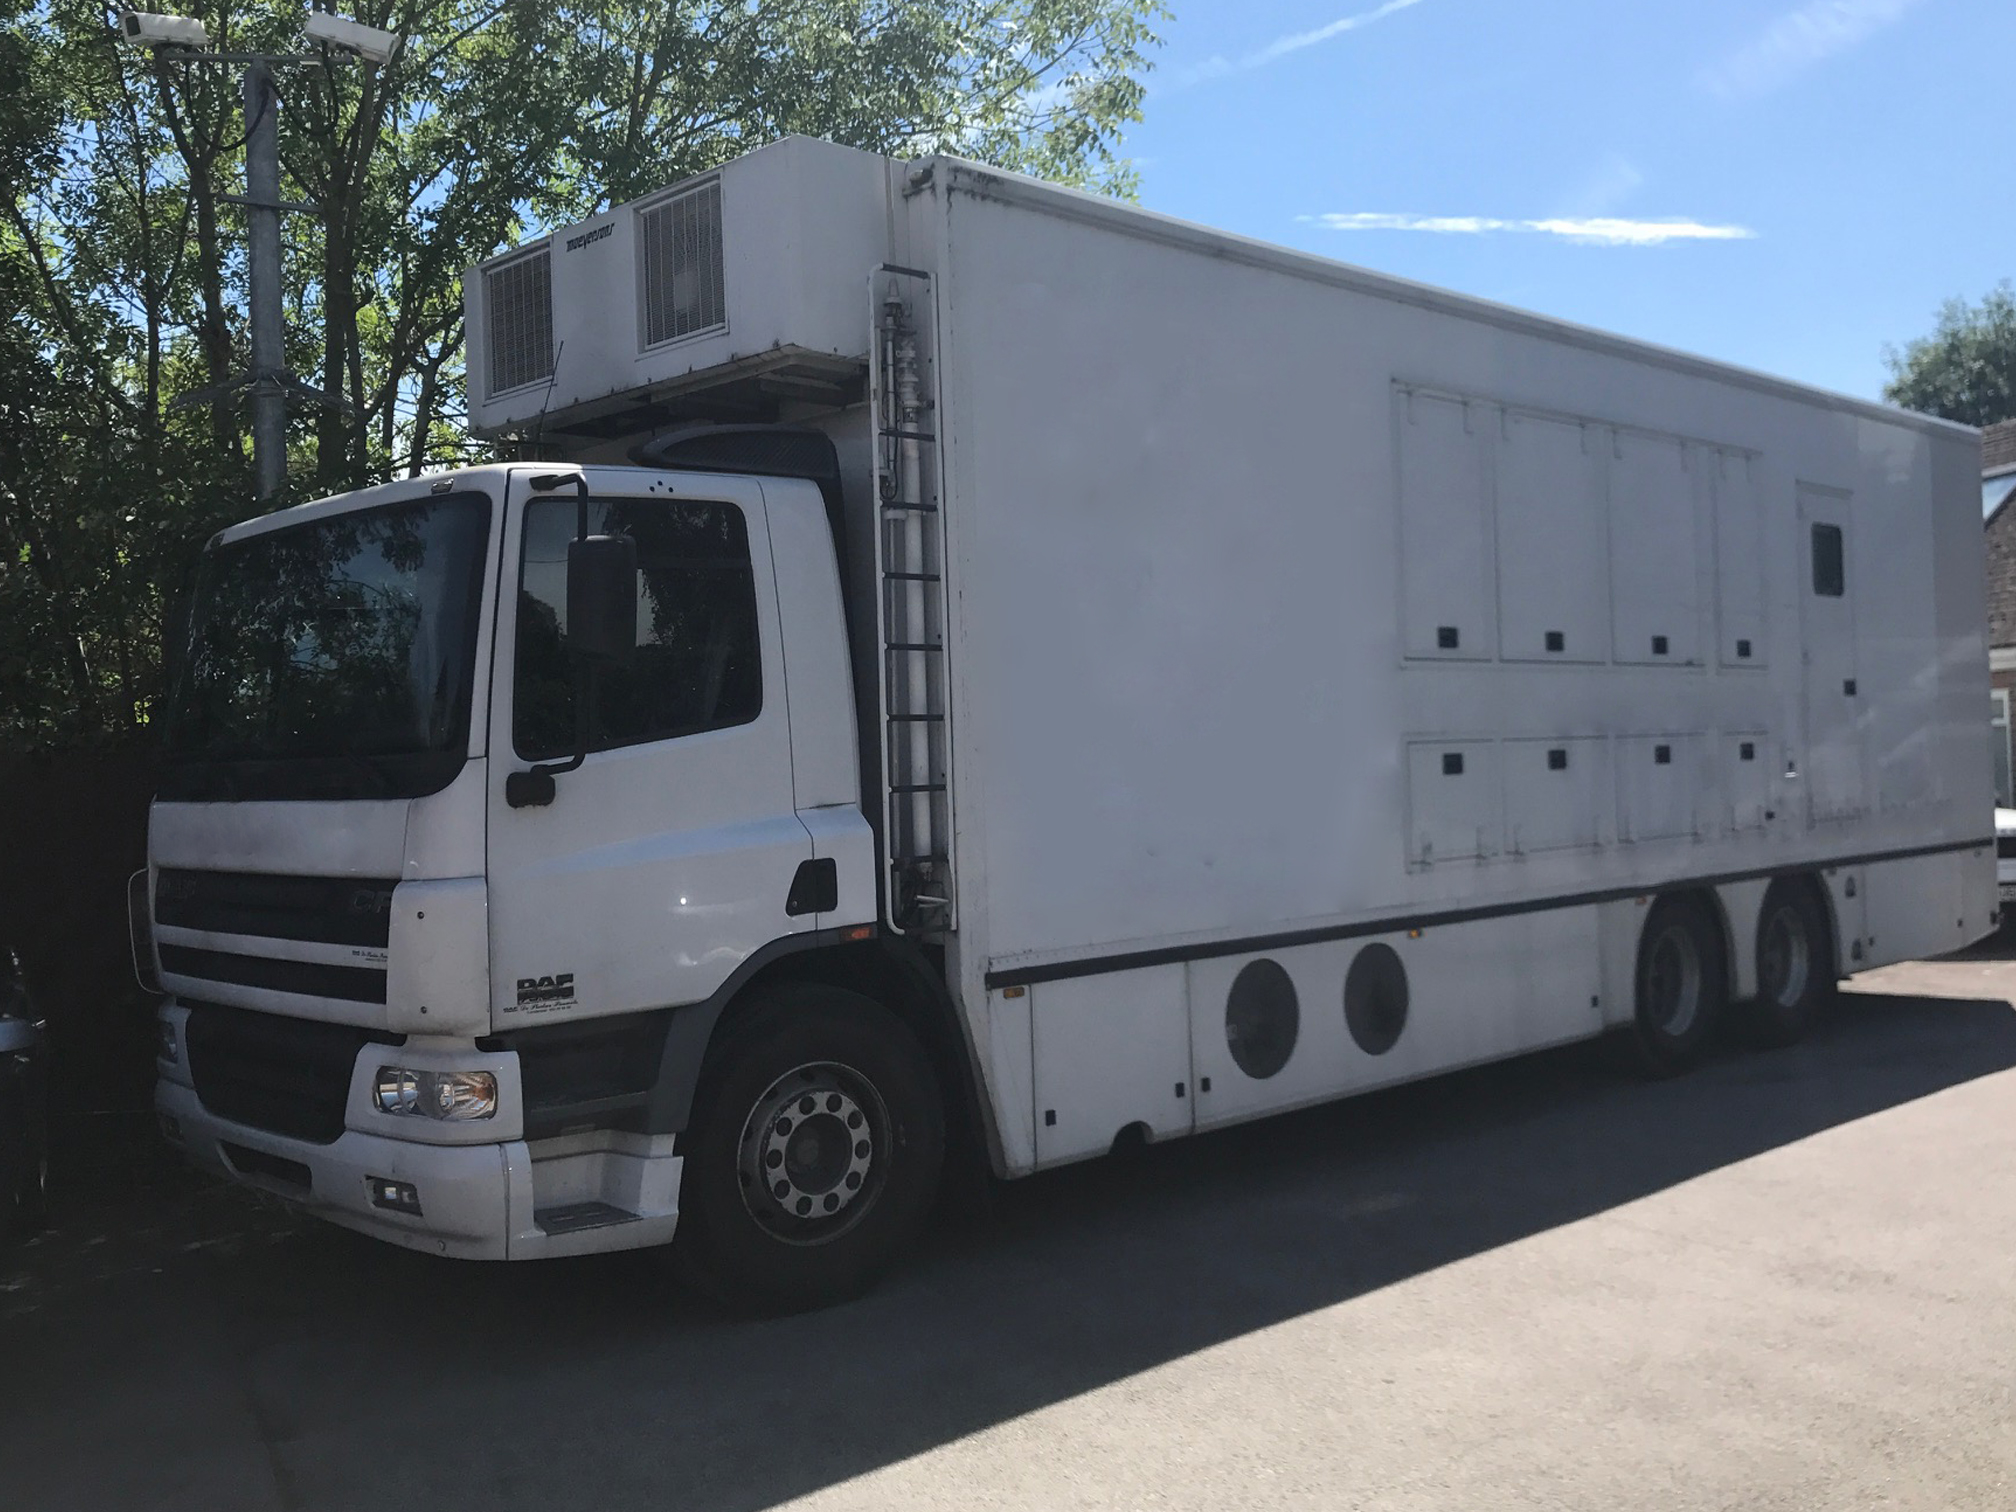 SOLD - Single Expanding Truck- REF DG001 - Image #1